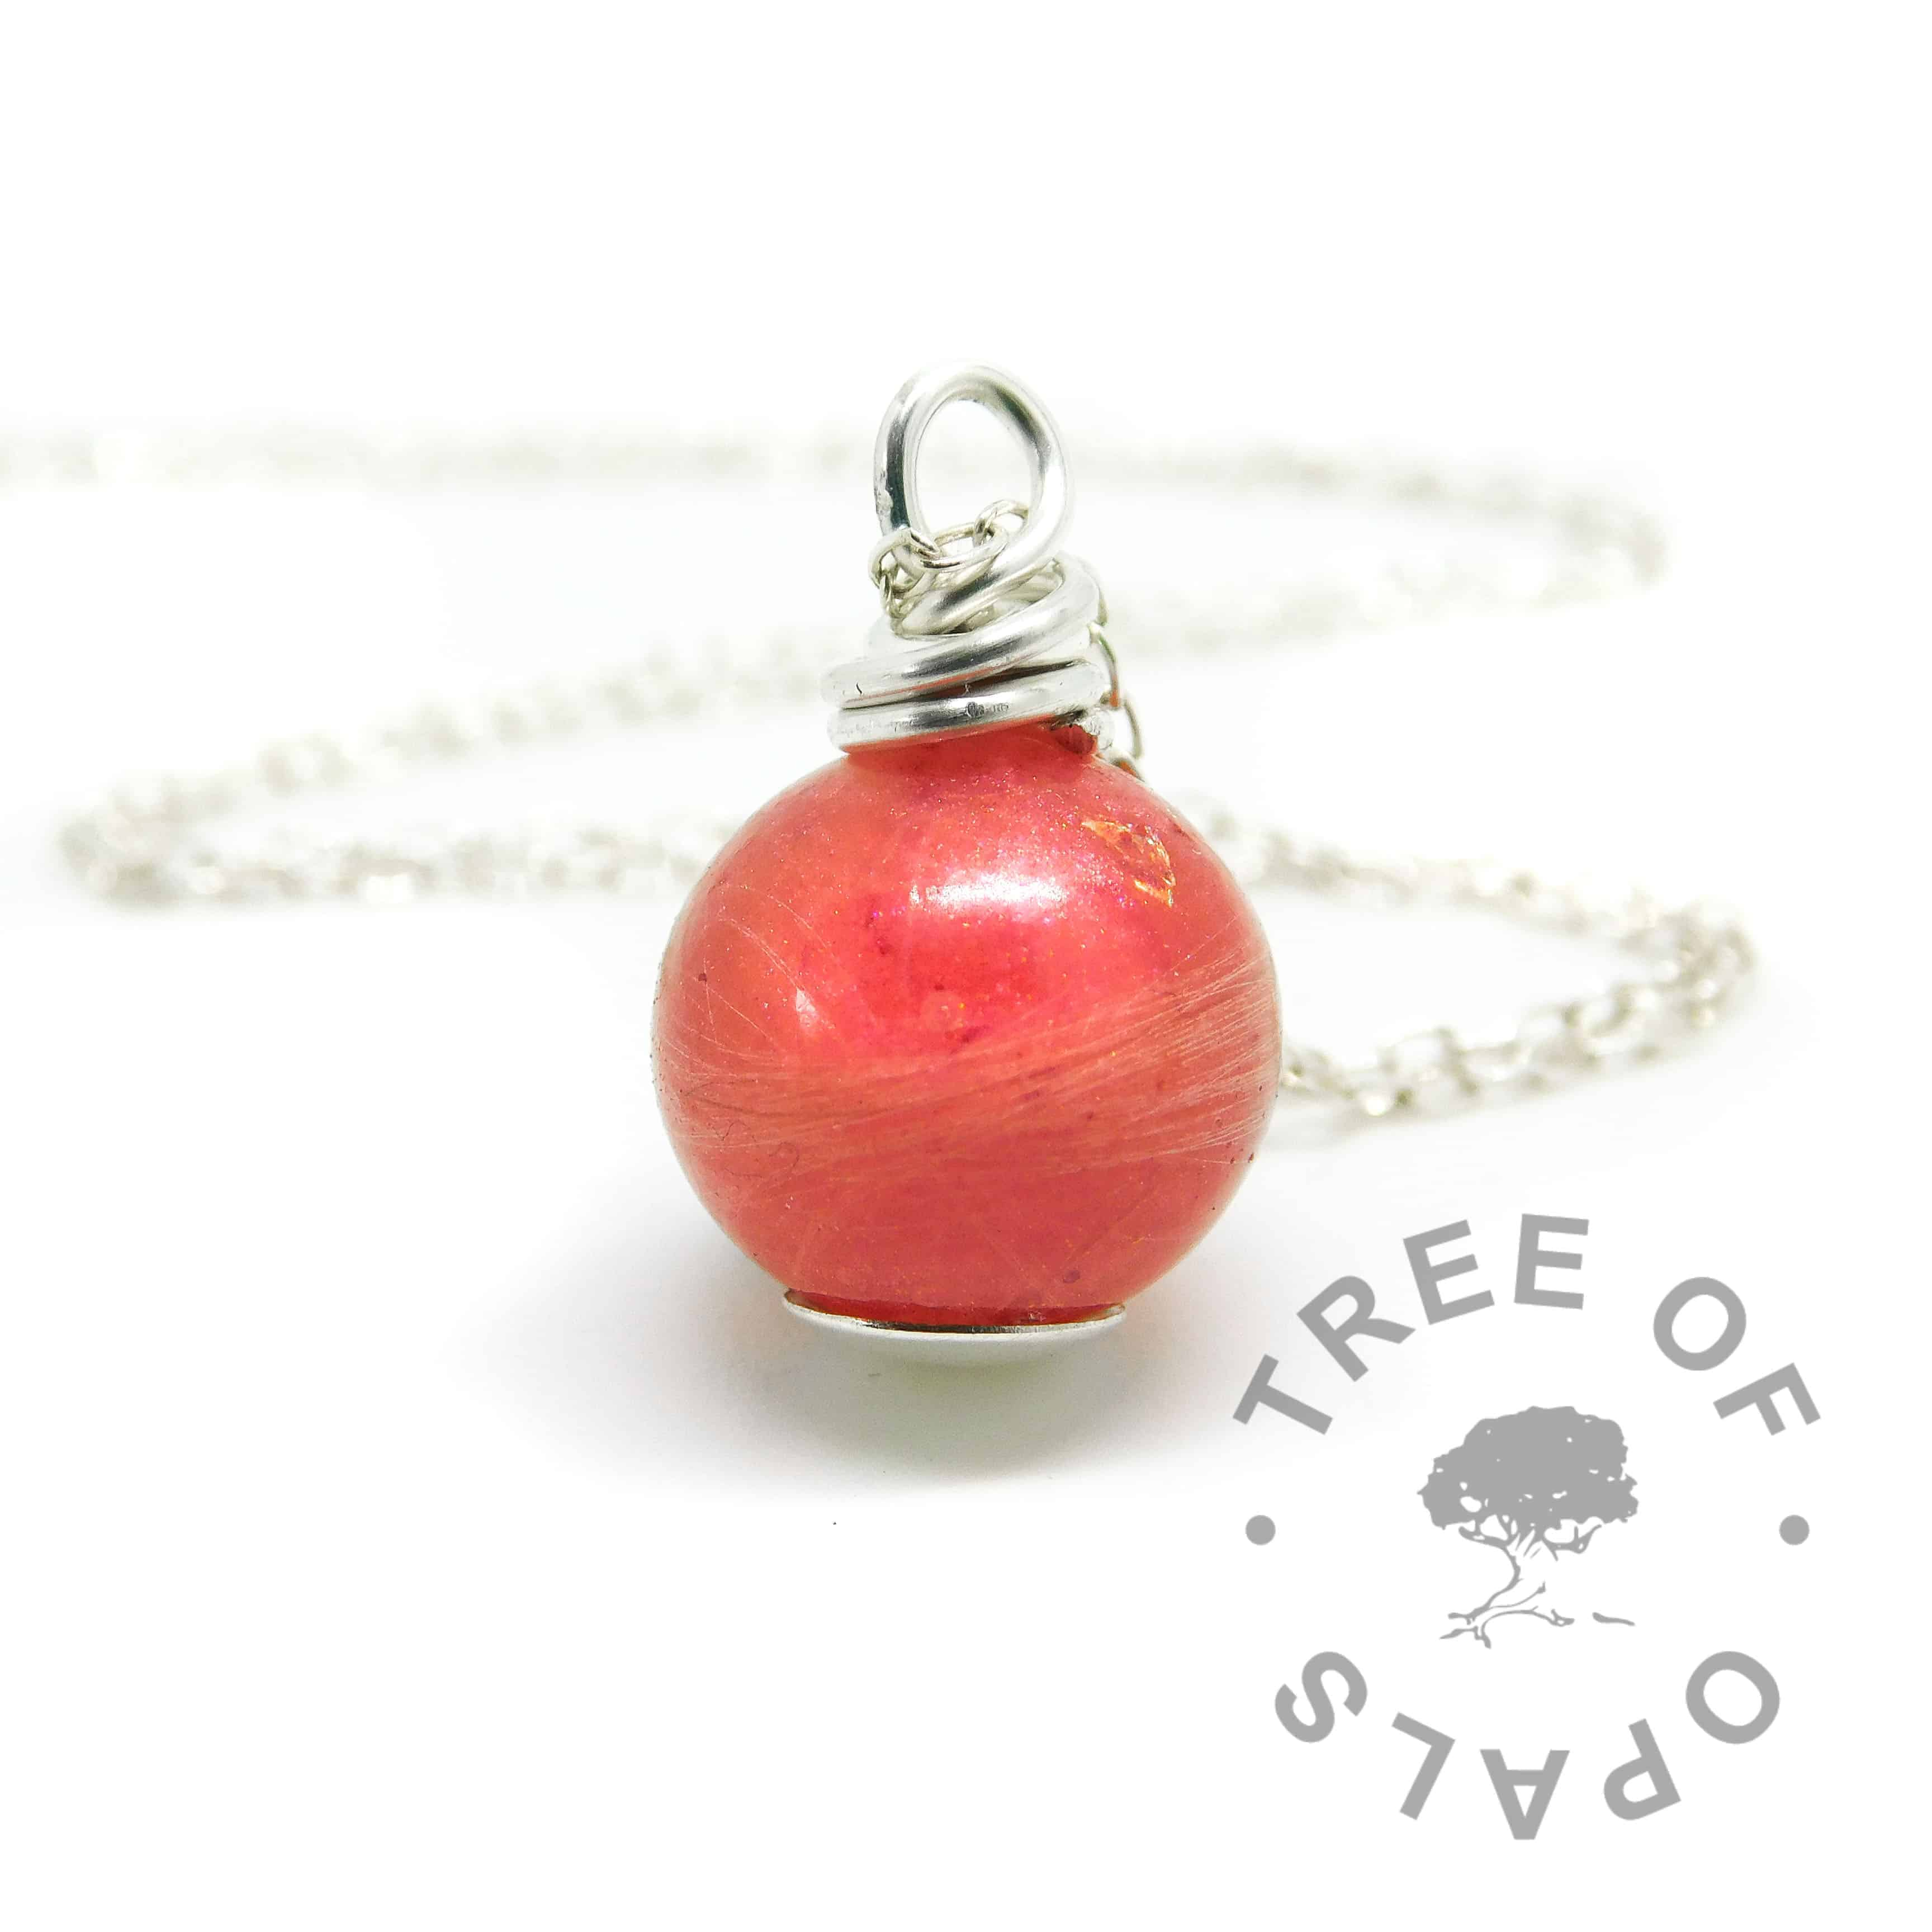 Lock of hair pearl. Naturally white or very light blonde hair with dragon's blood red resin sparkle mix, no birthstone. Set with solid sterling handmade headpin and shown with the standard necklace chain. Watermarked copyright image by Tree of Opals